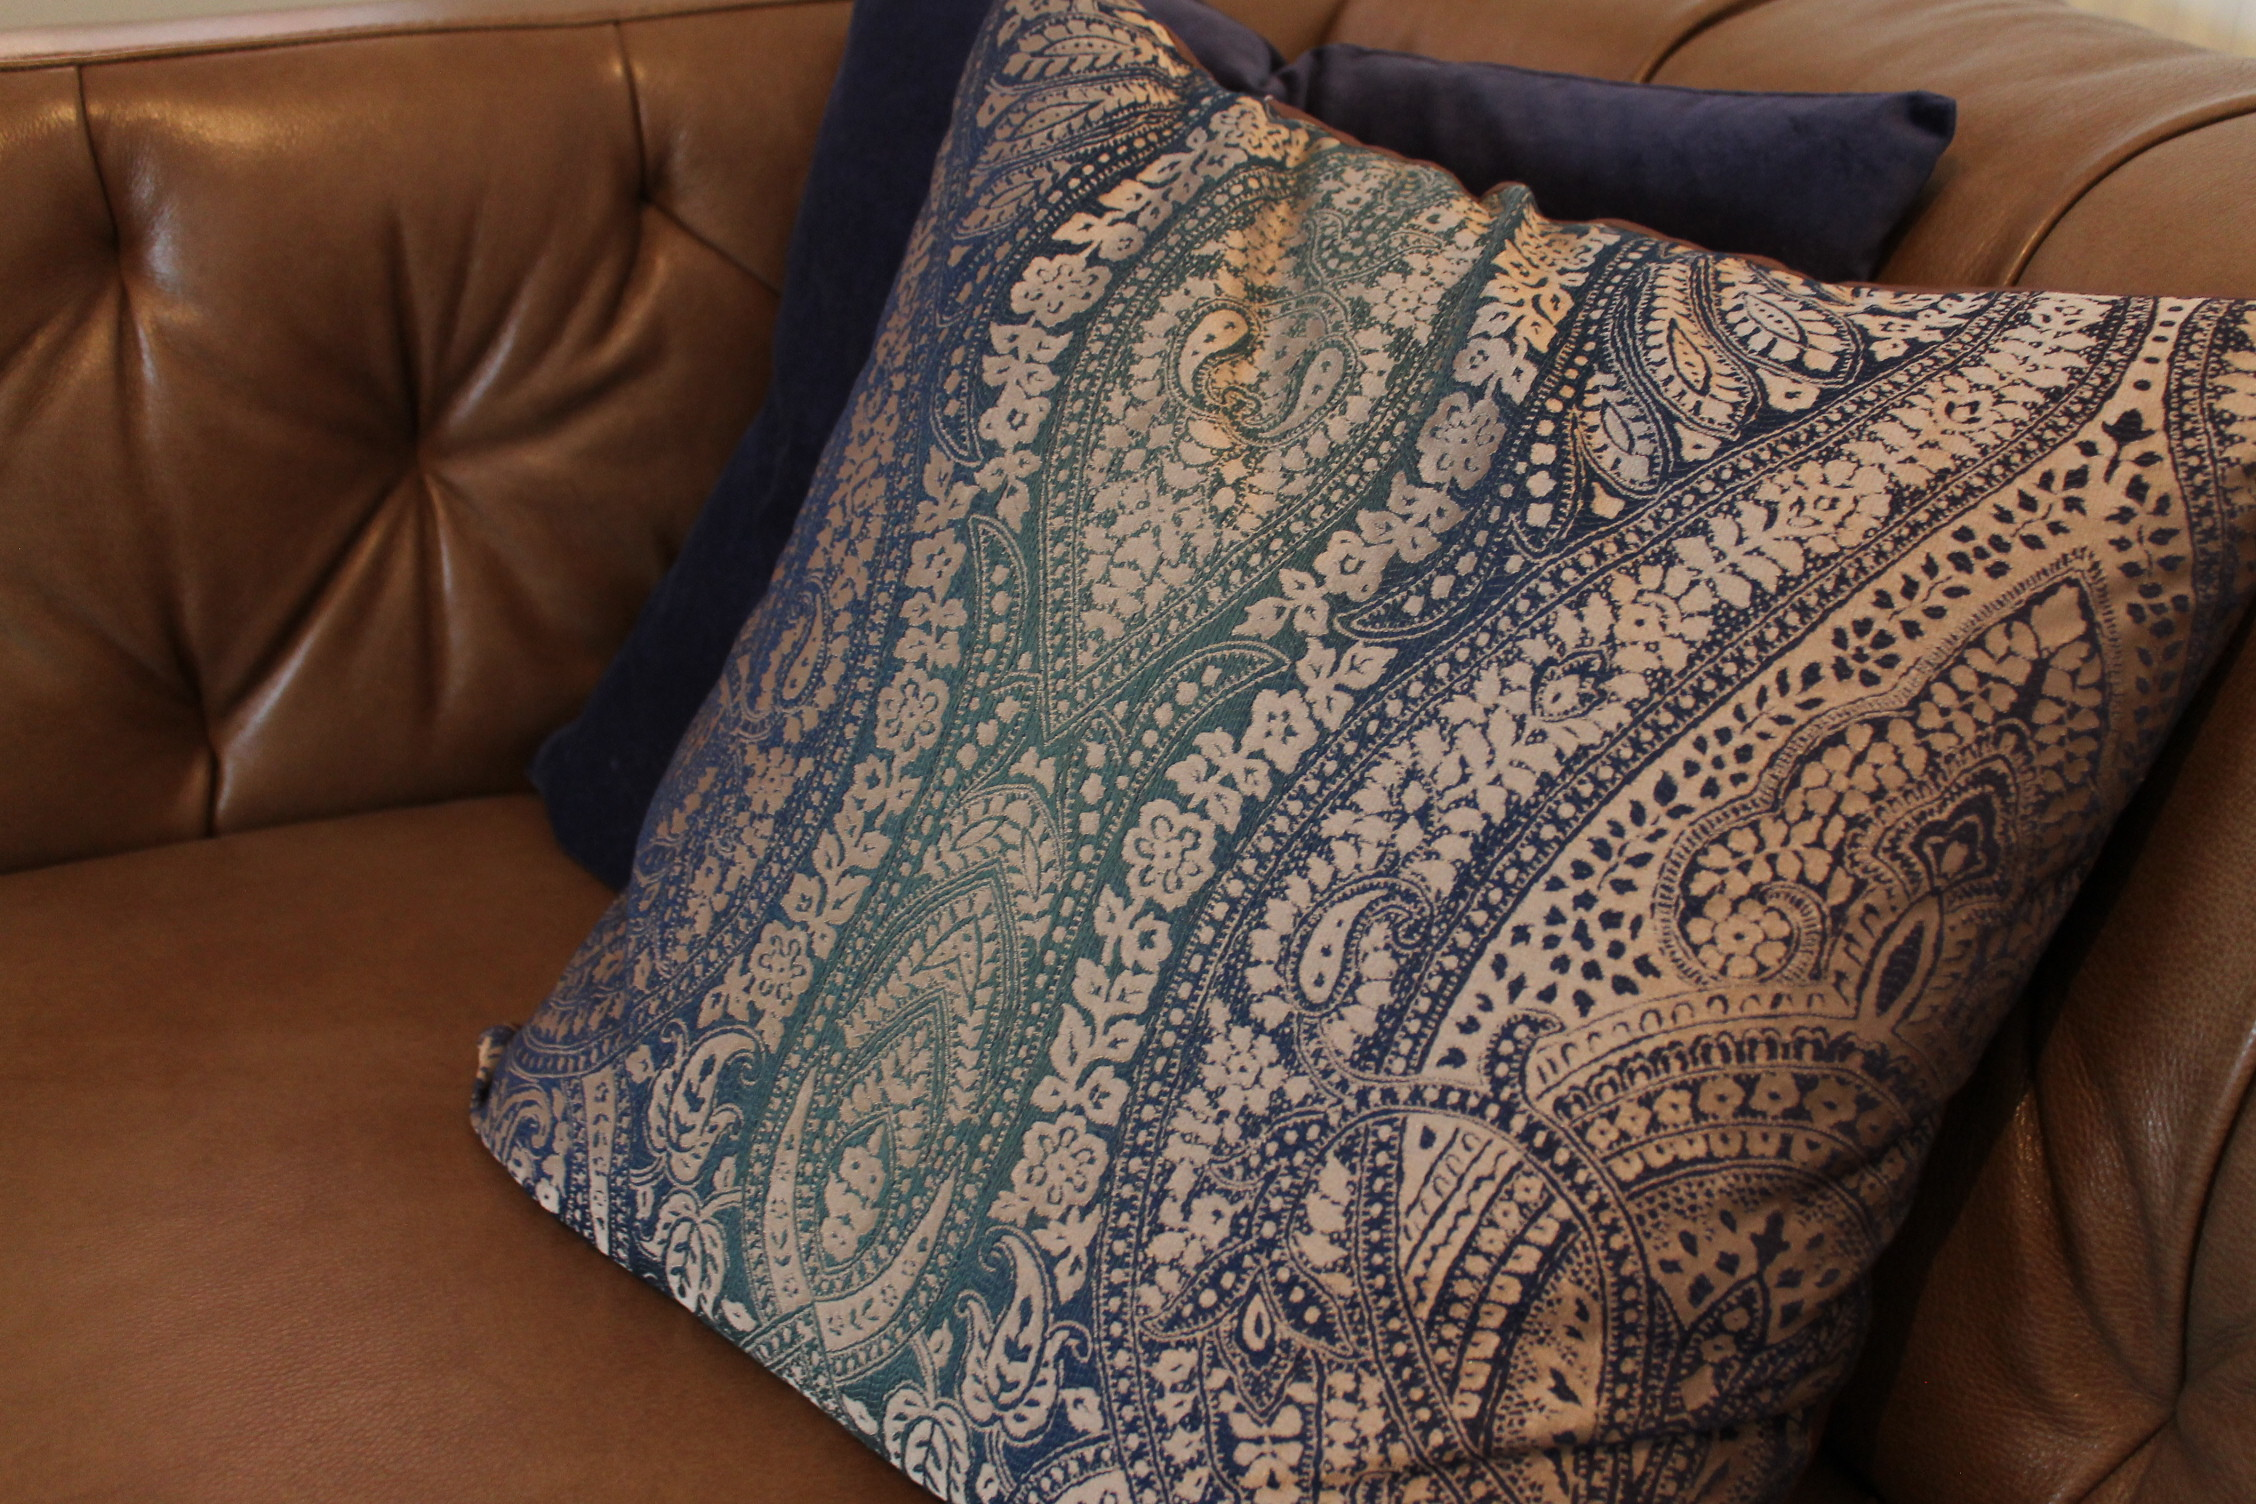 """Patterned and plain cushions in blue tones on top of a tan leather sofa"""